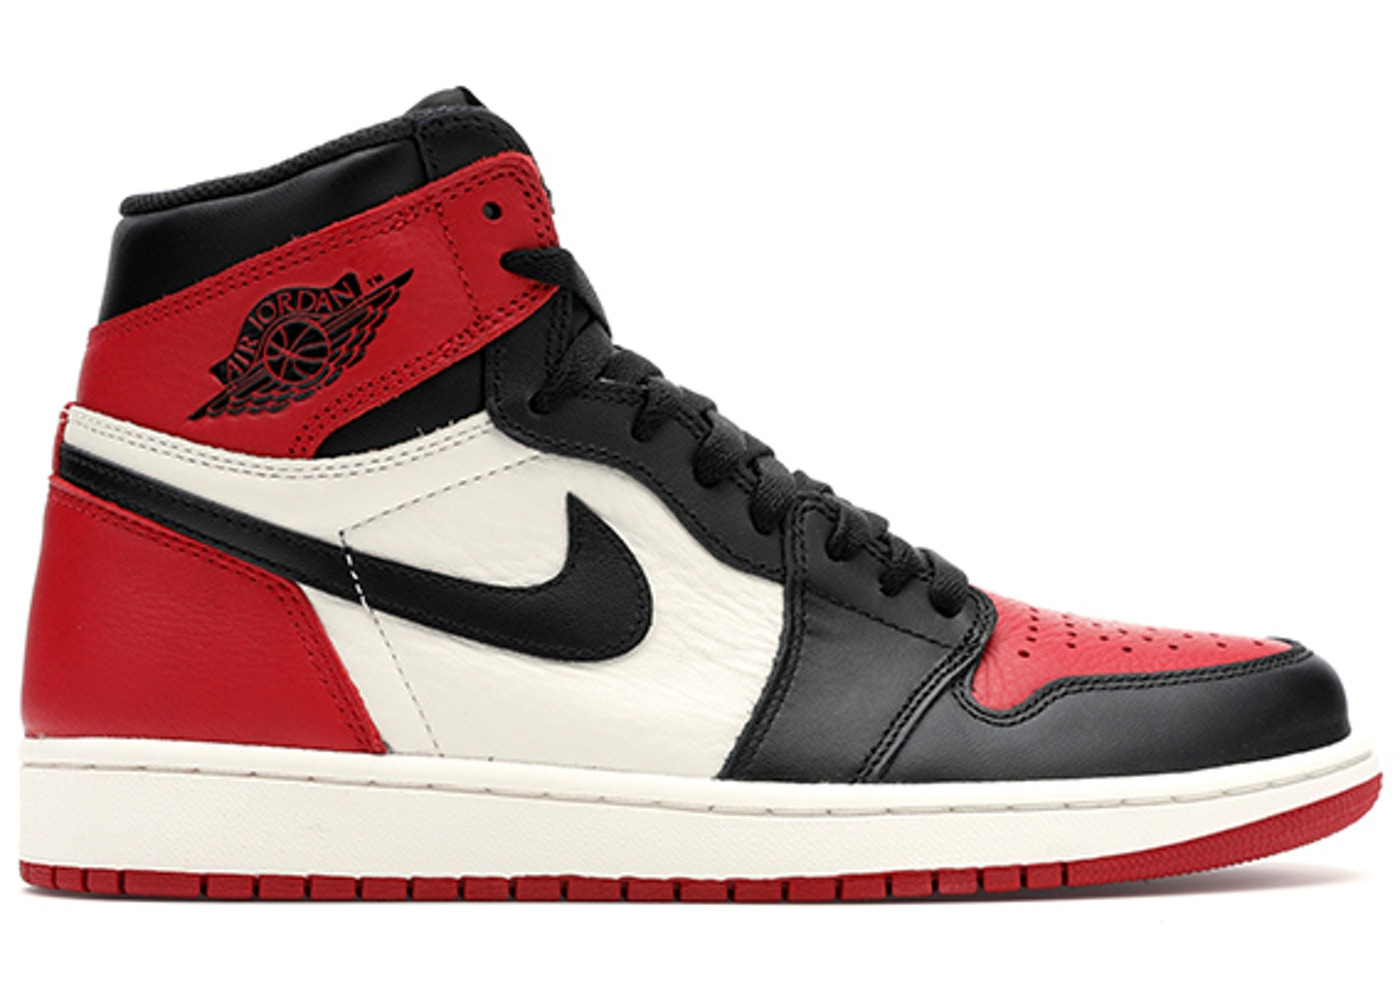 buy popular f1bf1 60ae7 Jordan 1 Retro High Bred Toe - 555088-610